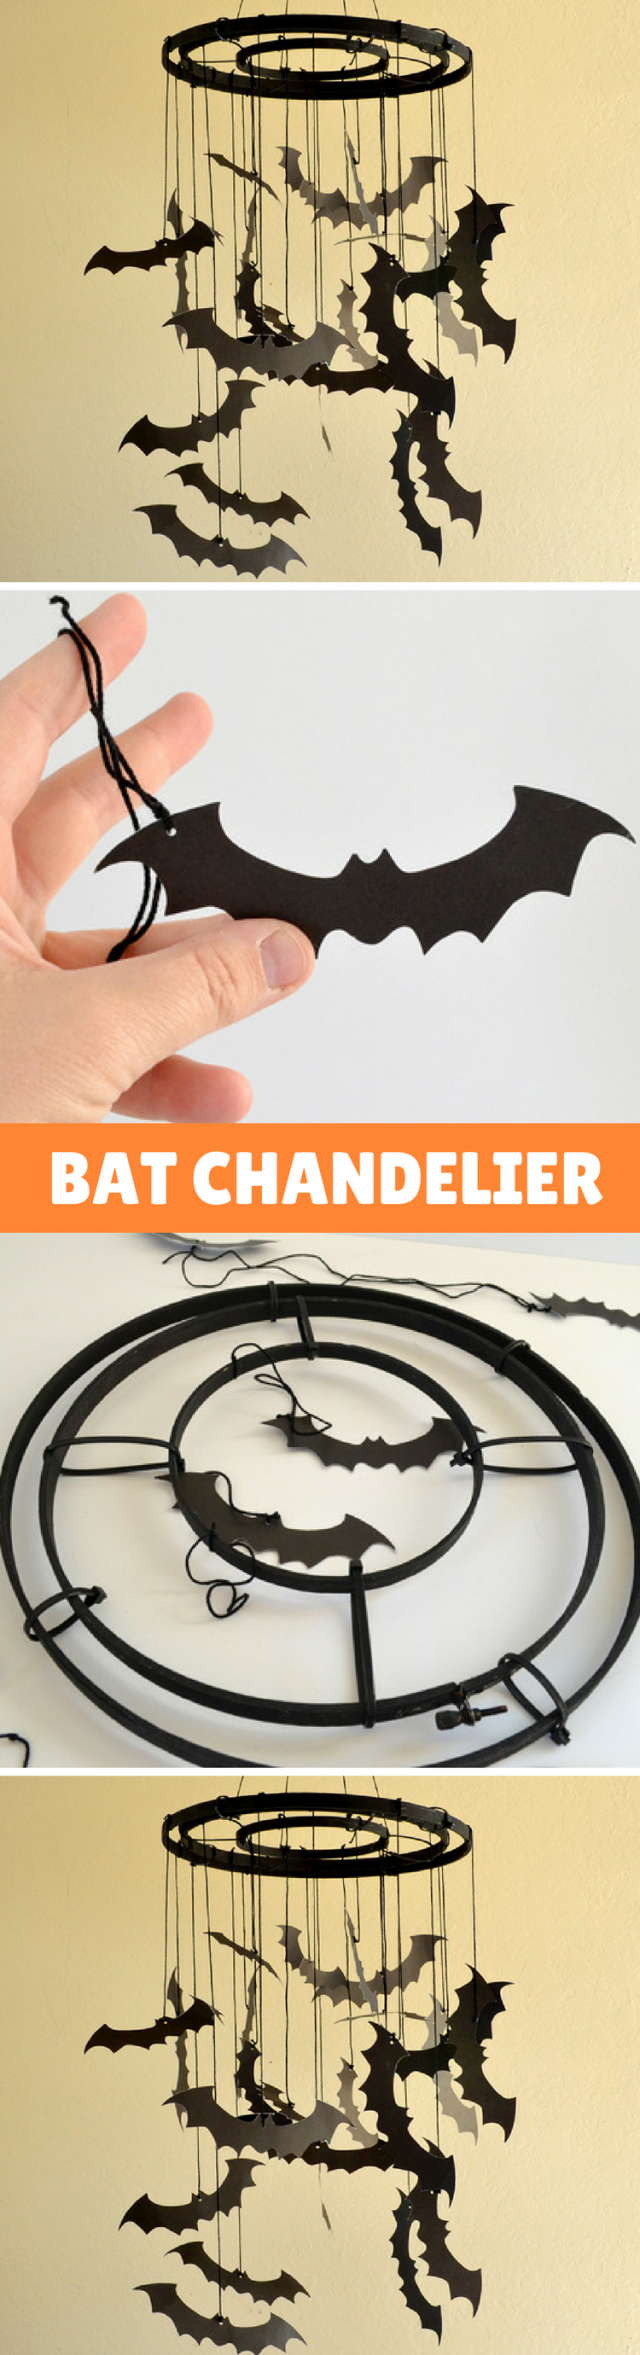 DIY Paper Bat Chandelier Tutorial